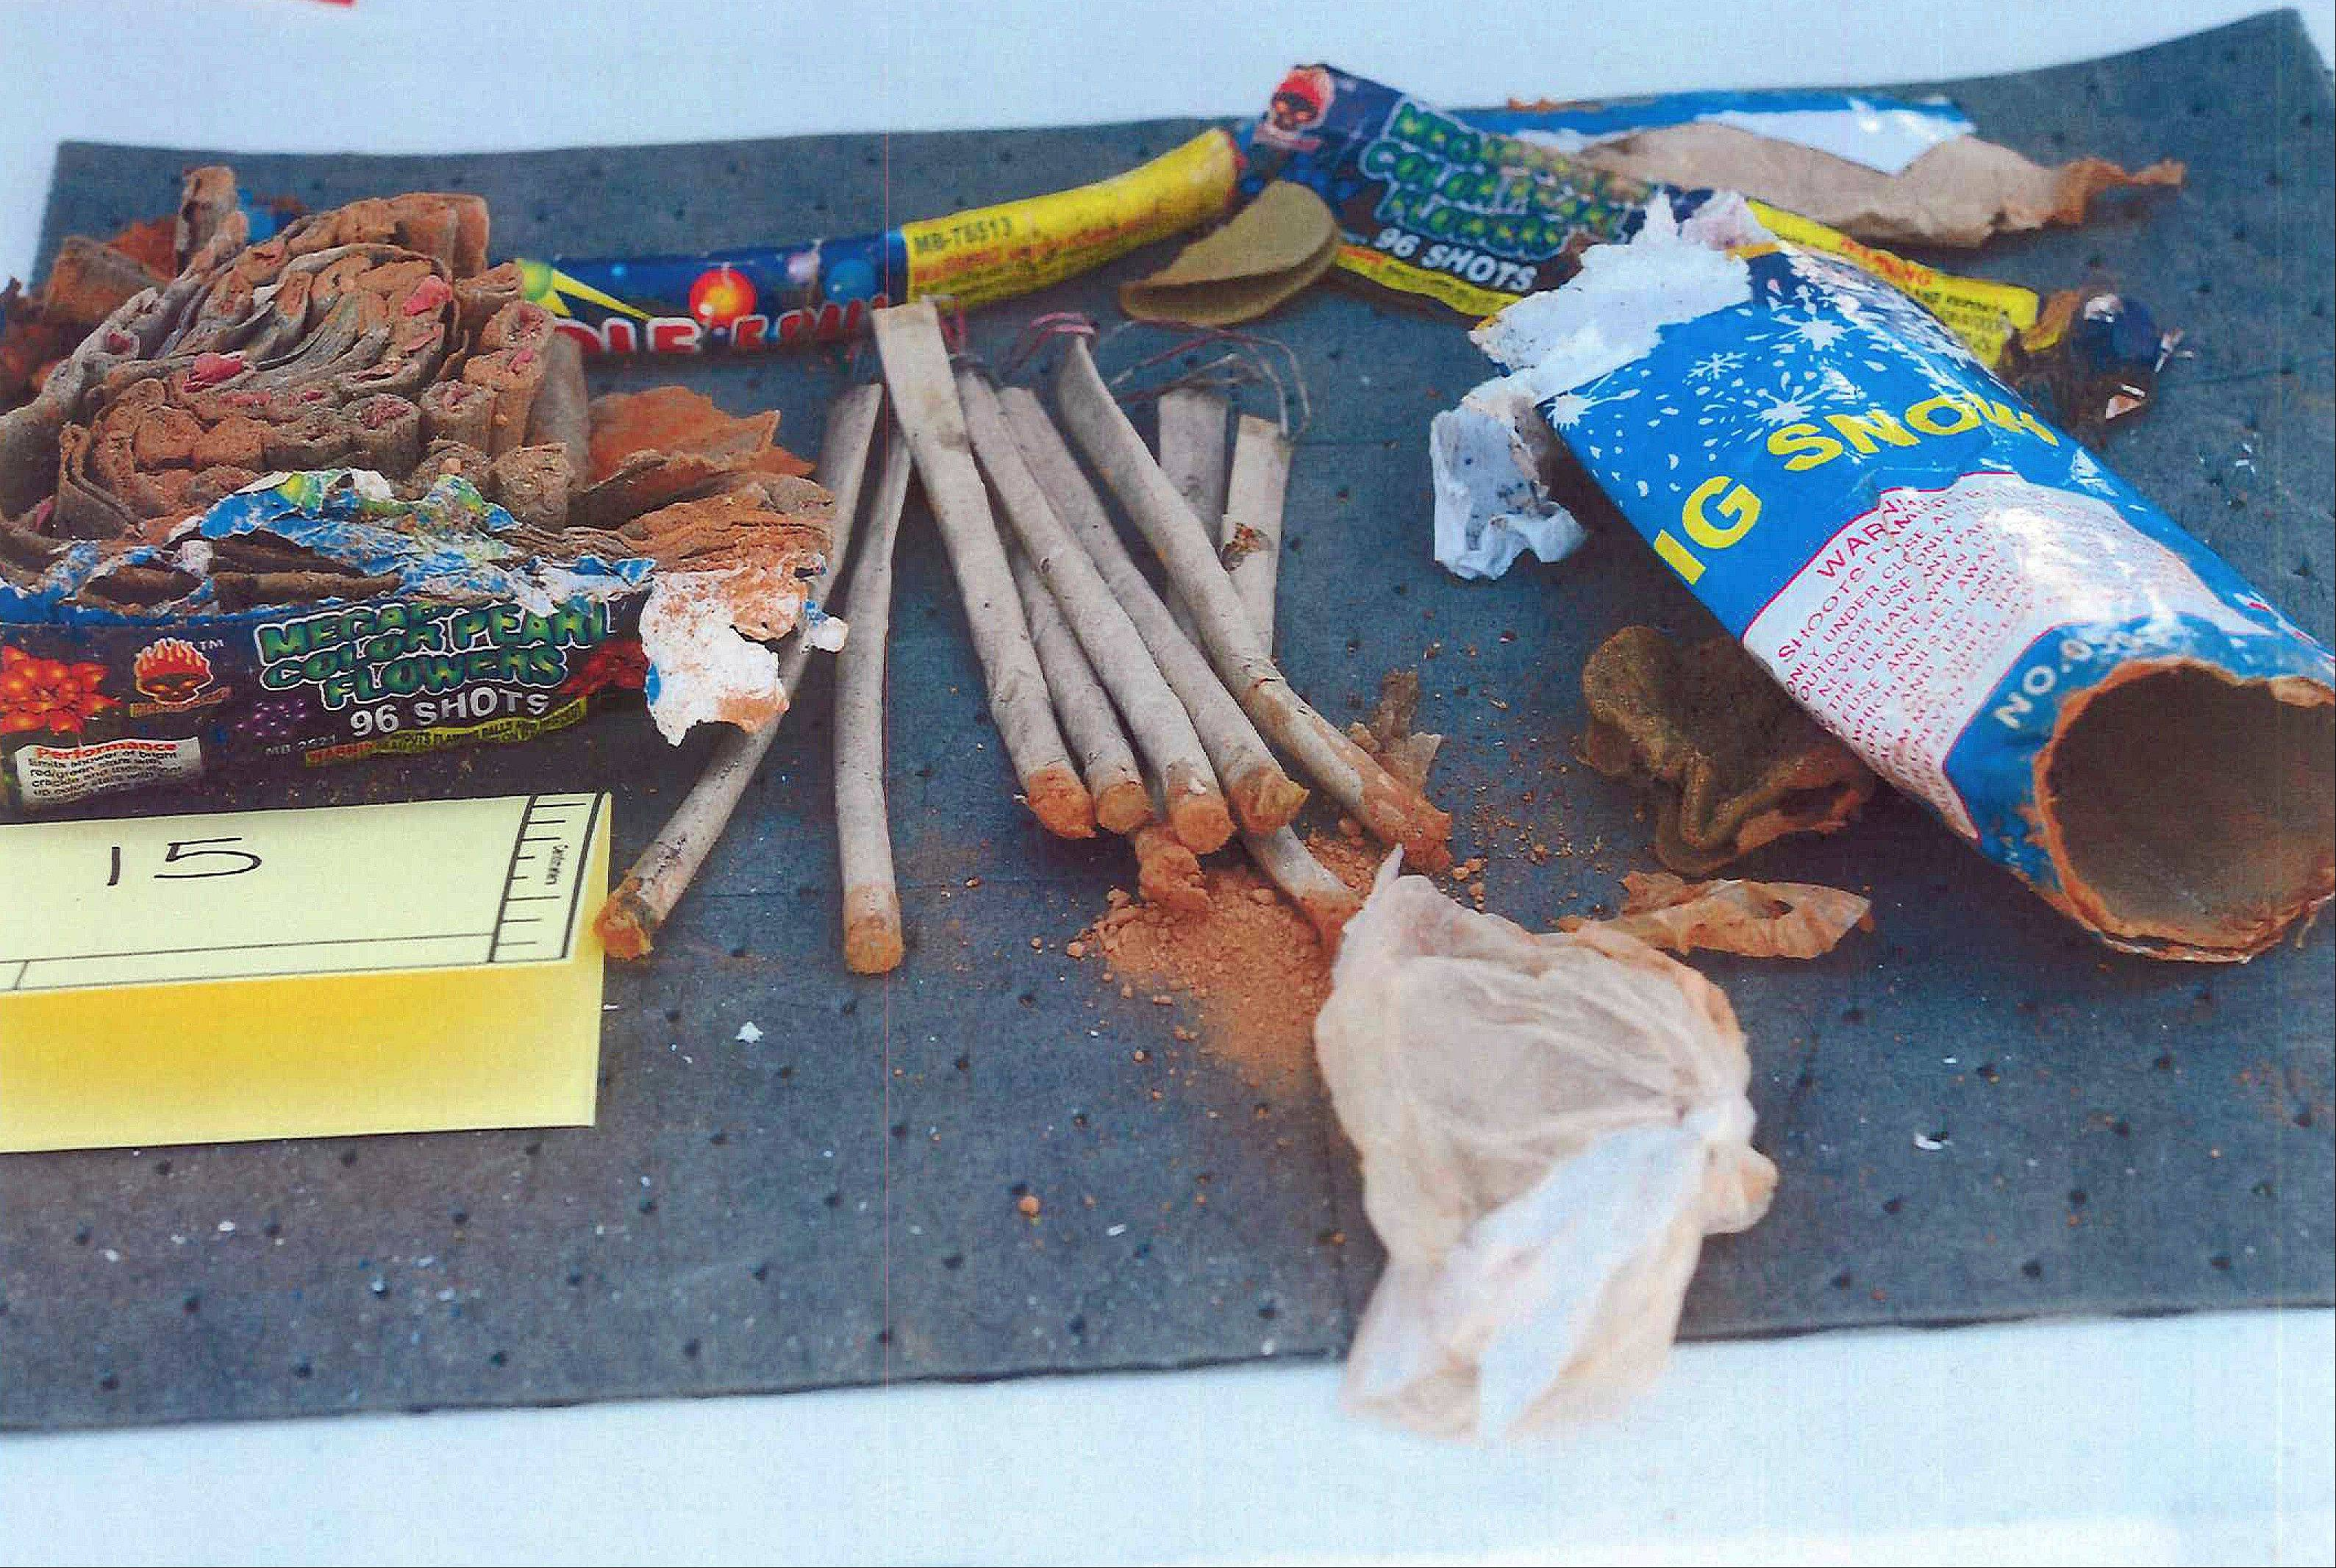 This photo released Wednesday by the U.S. Attorney's office shows fireworks that the office says federal agents recovered from inside a backpack belonging to Boston Marathon bombing suspect Dzhokhar Tsarnaeva, found in a landfill in New Bedford, Mass.